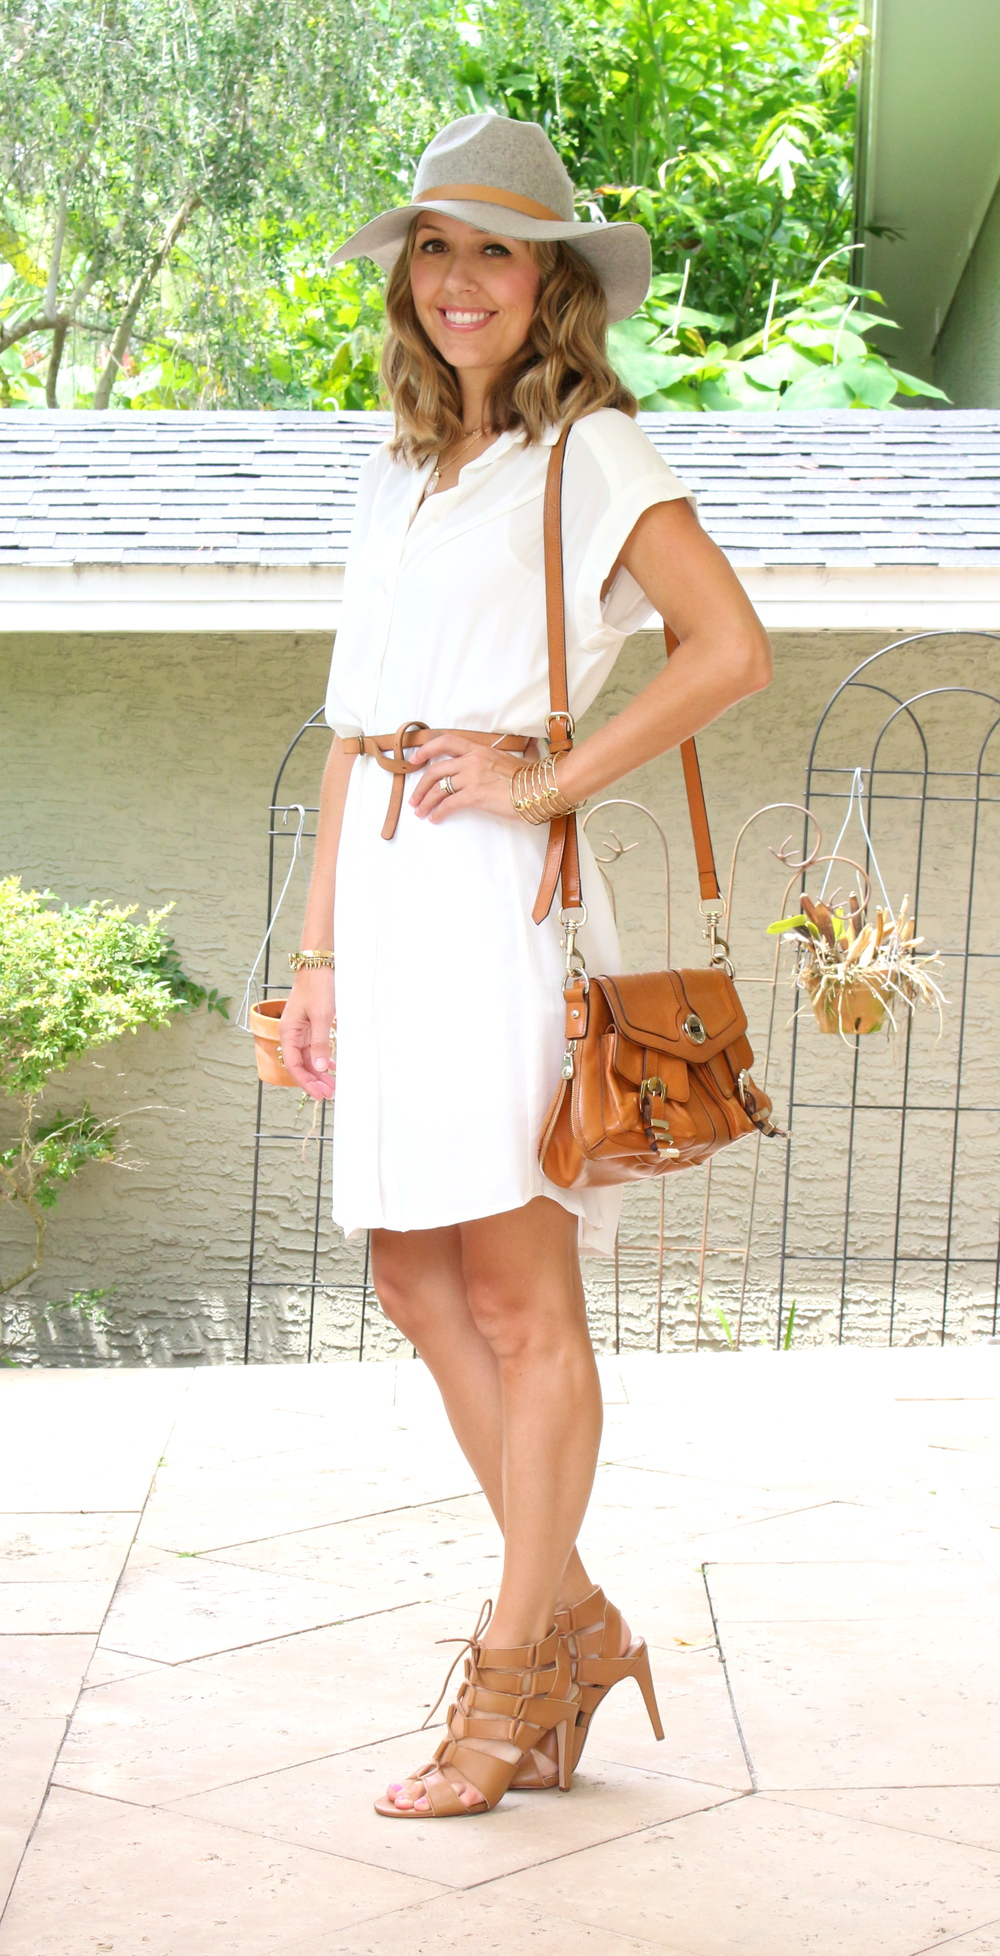 White shirt dress and gray wool hat